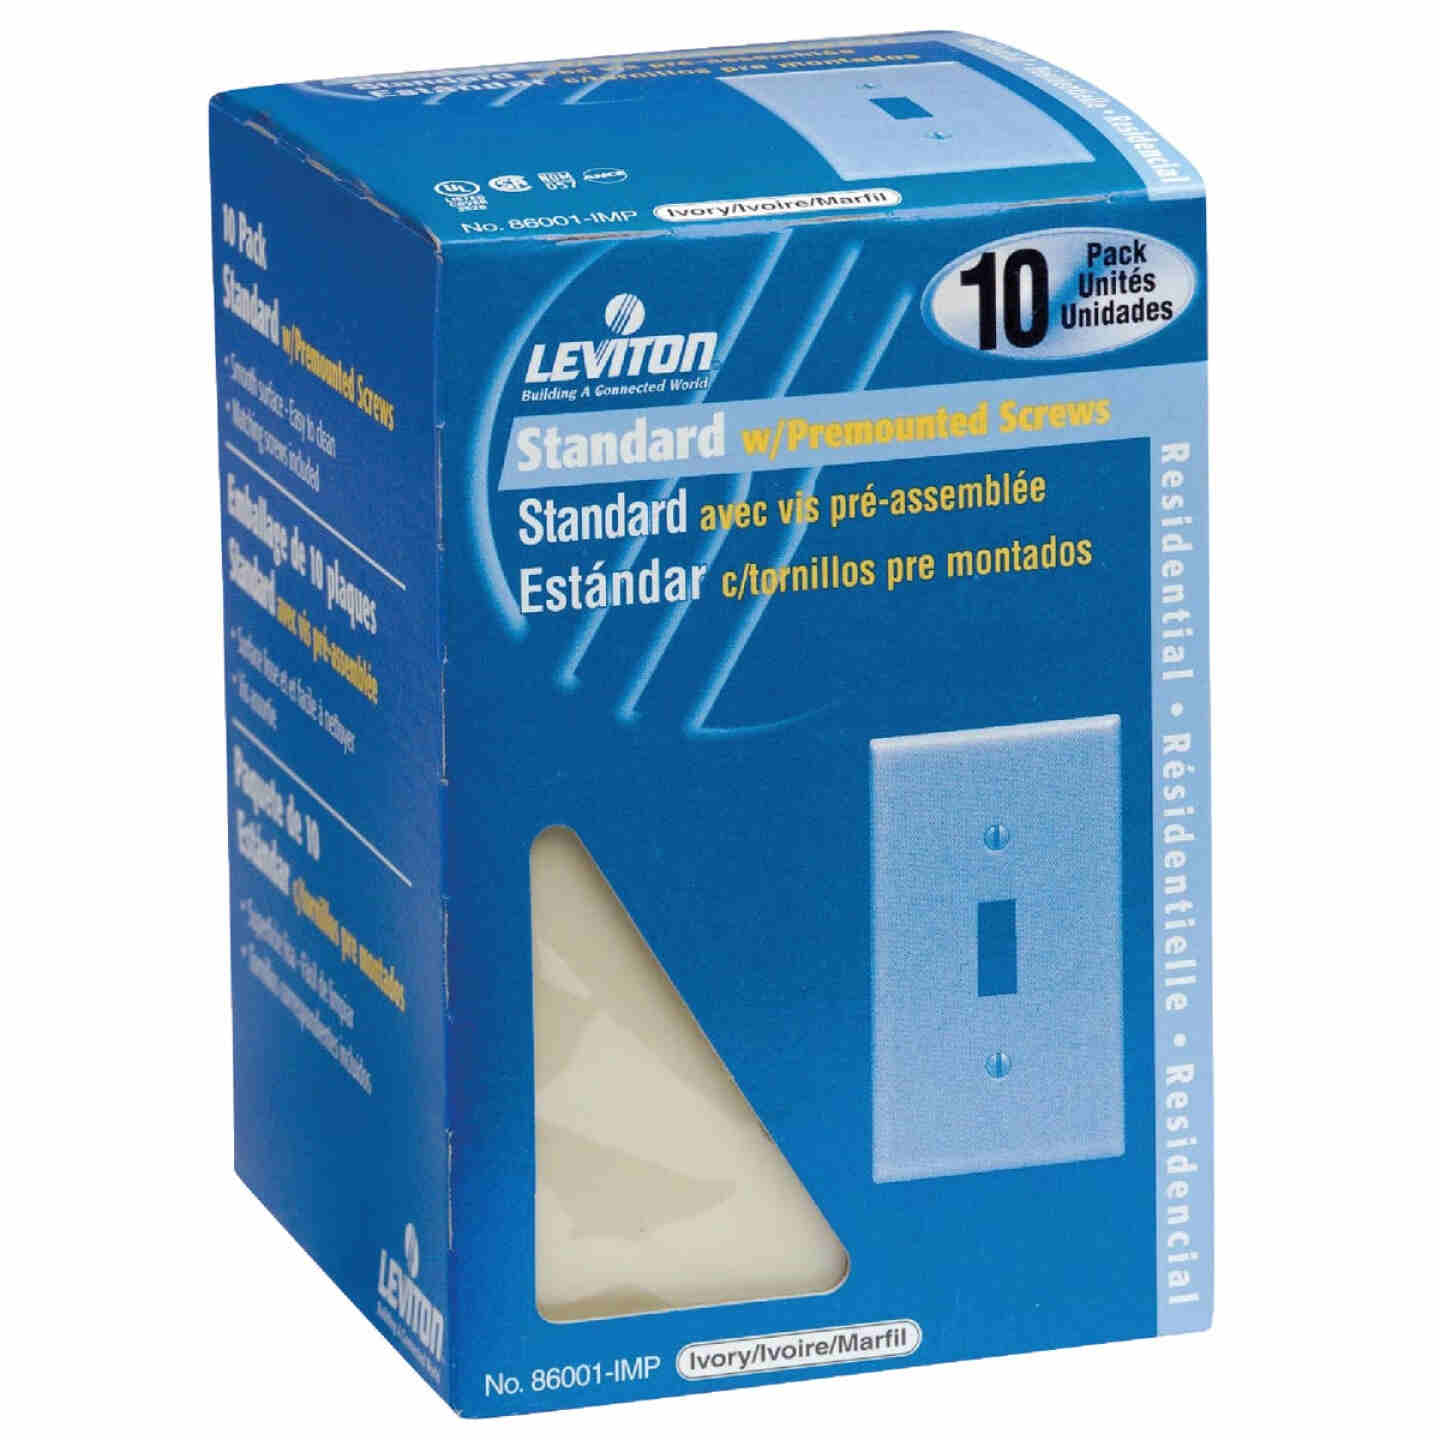 Leviton 1-Gang Plastic Toggle Switch Wall Plate, Ivory (10-Pack) Image 1